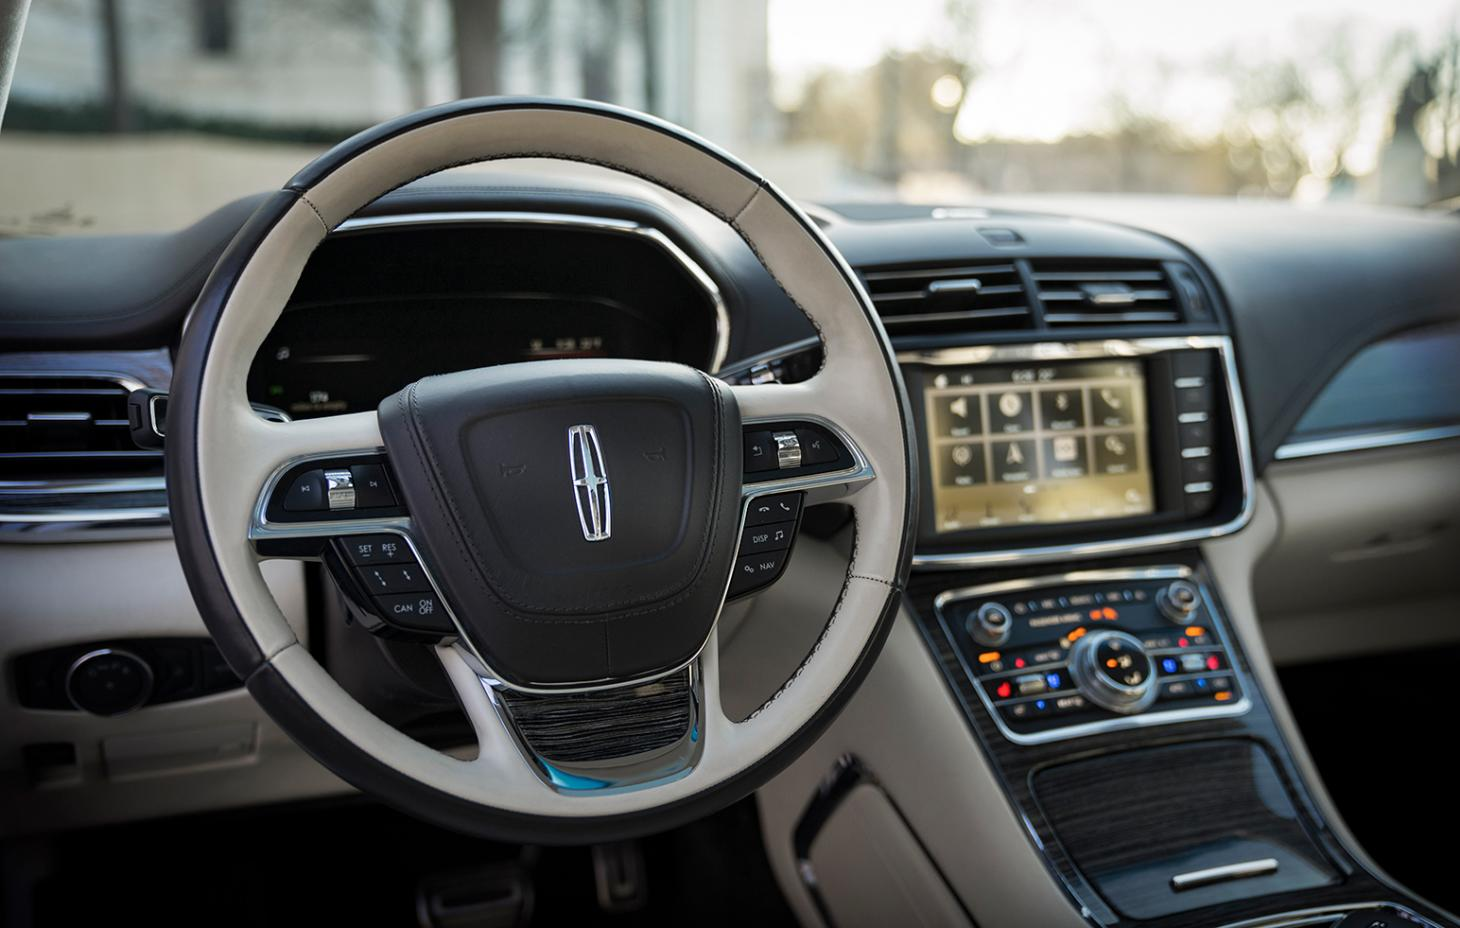 Steering wheel and dashboard of the new Lincoln Continental